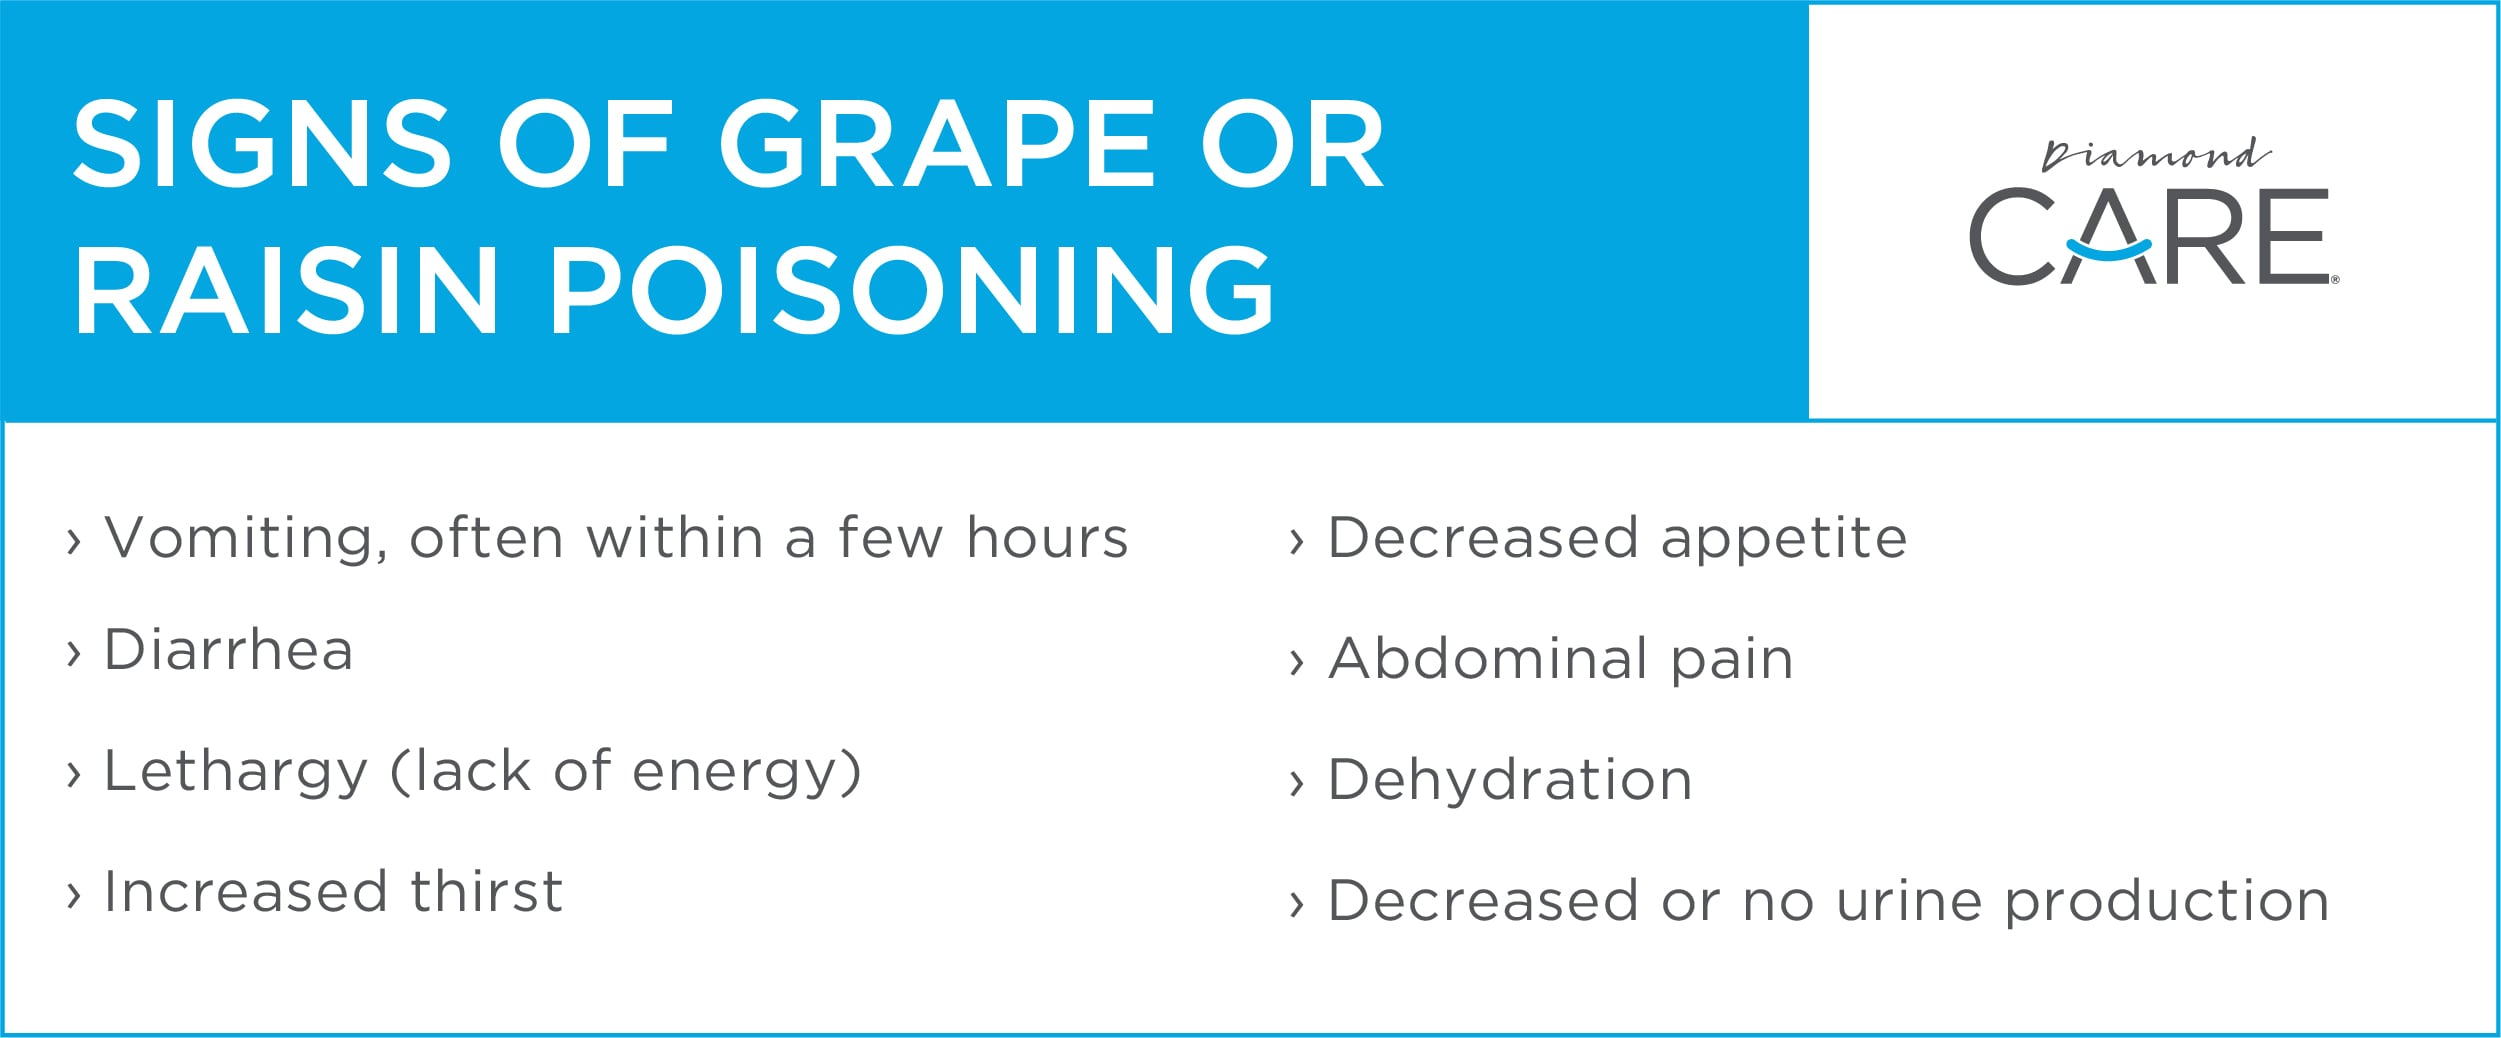 Signs of Grape or Raisin Poisoning | Diamond Pet Foods